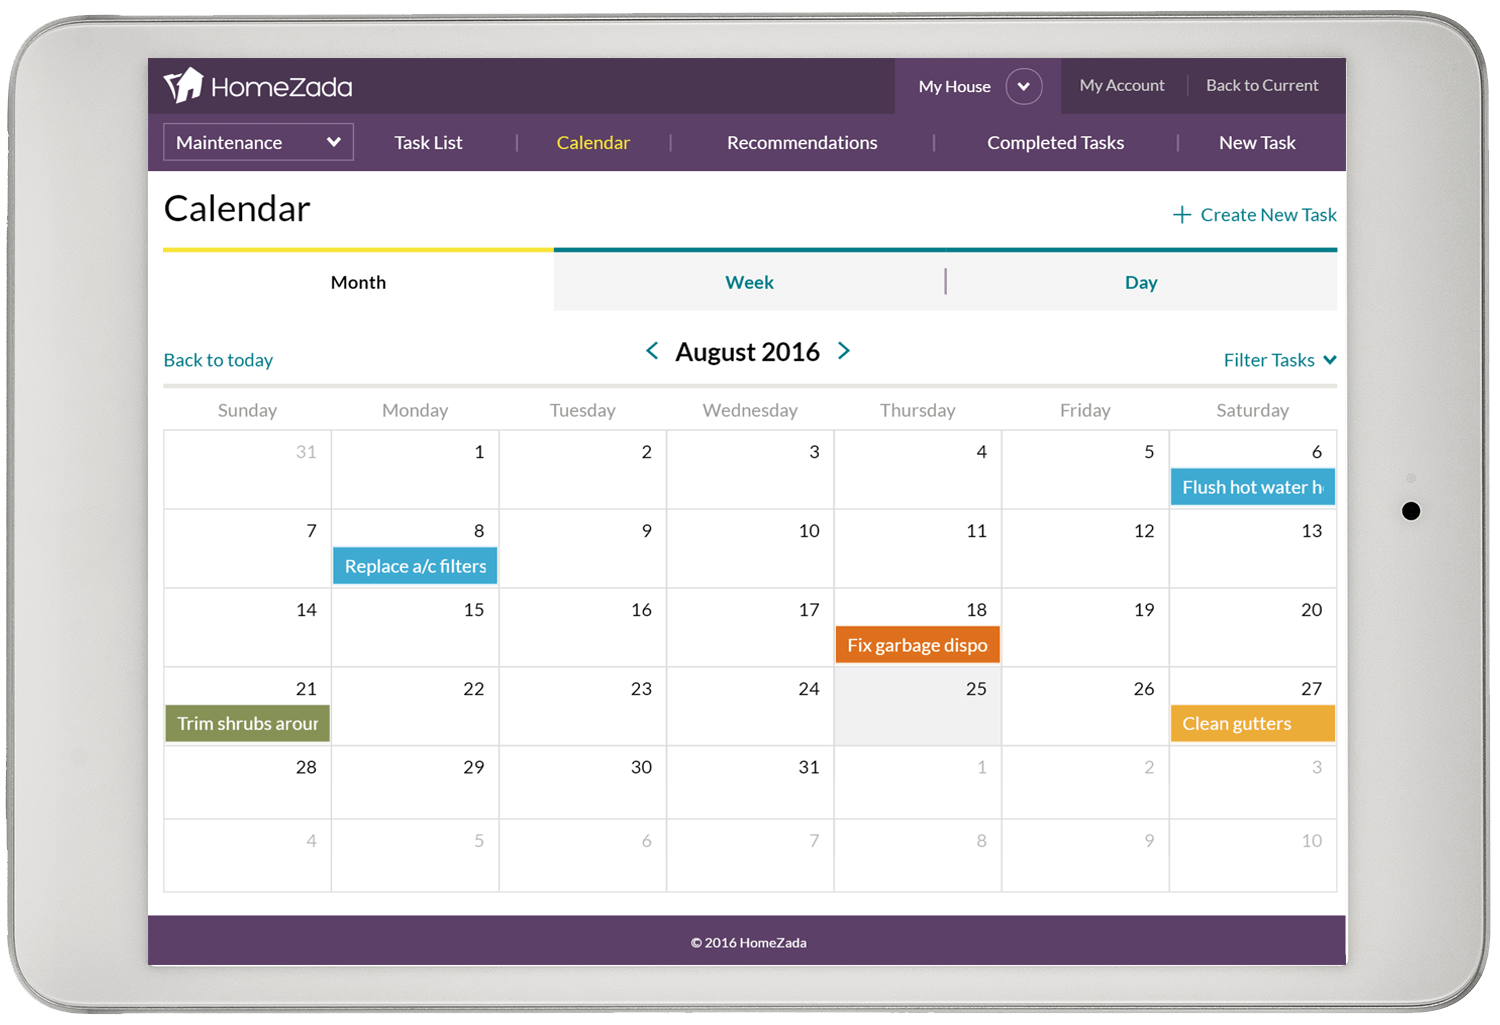 Home builder maintenance schedule and calendar screenshot